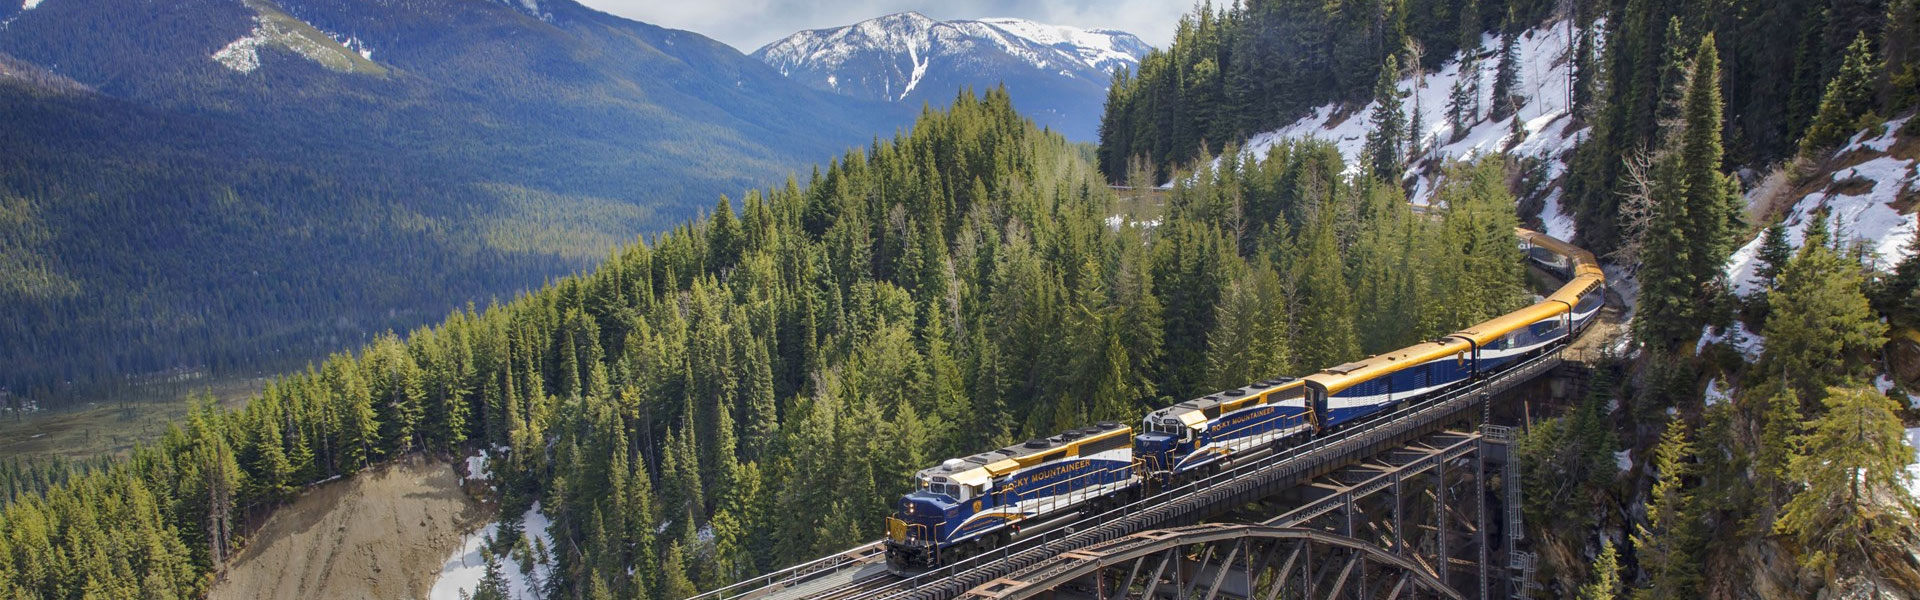 Canadian Rockies Train Vacations | Rocky Mountaineer Train Banff